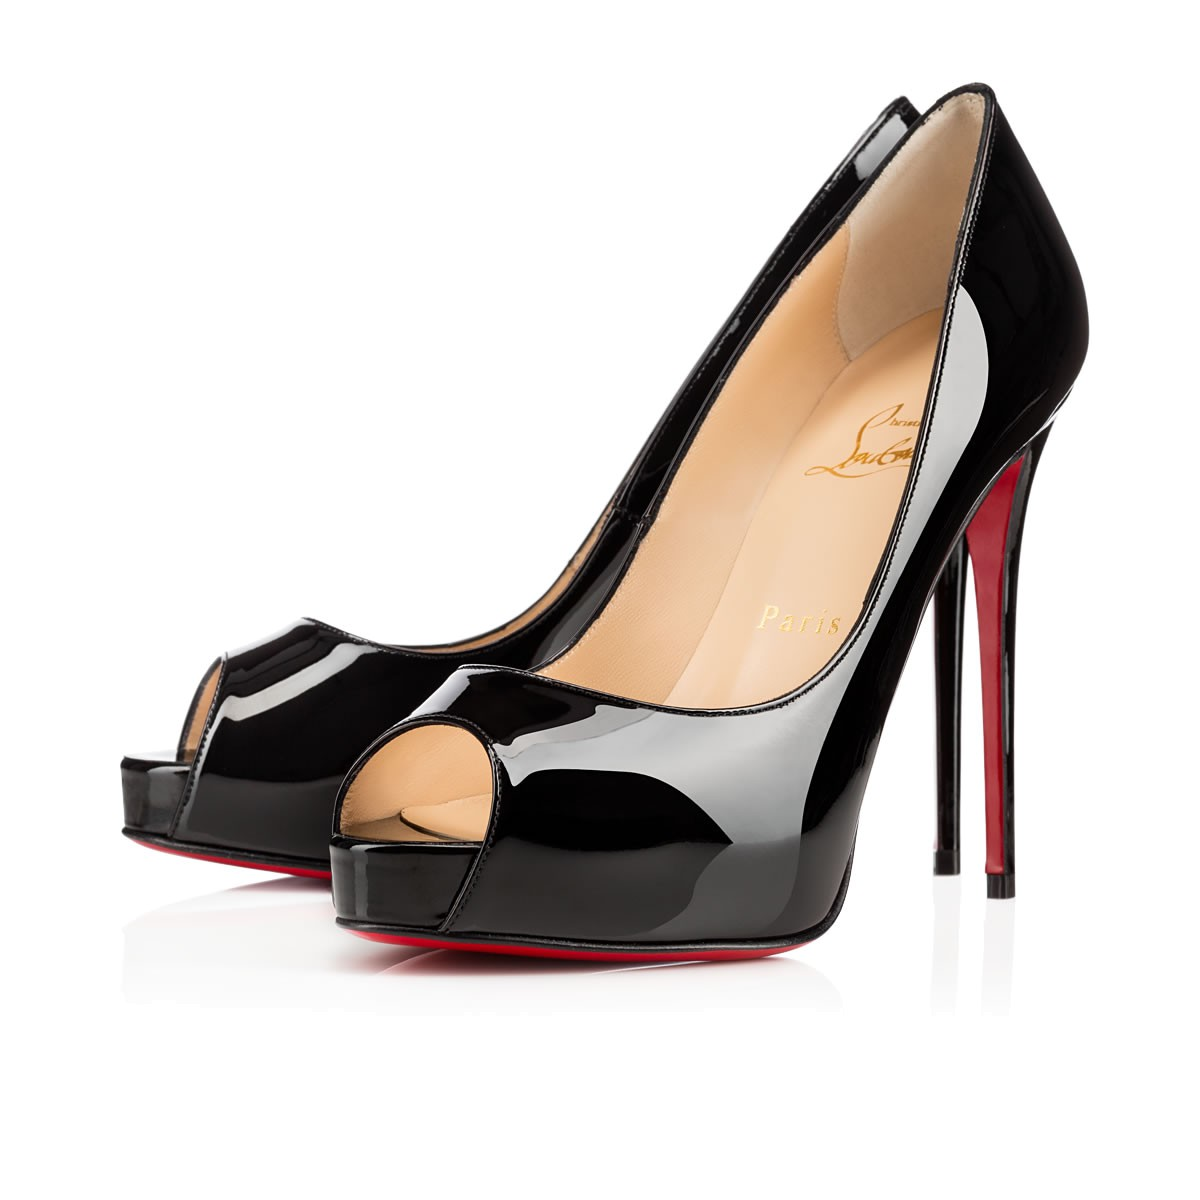 a5e3846b4fd New Very Prive 120 Black Patent Leather - Women Shoes - Christian Louboutin